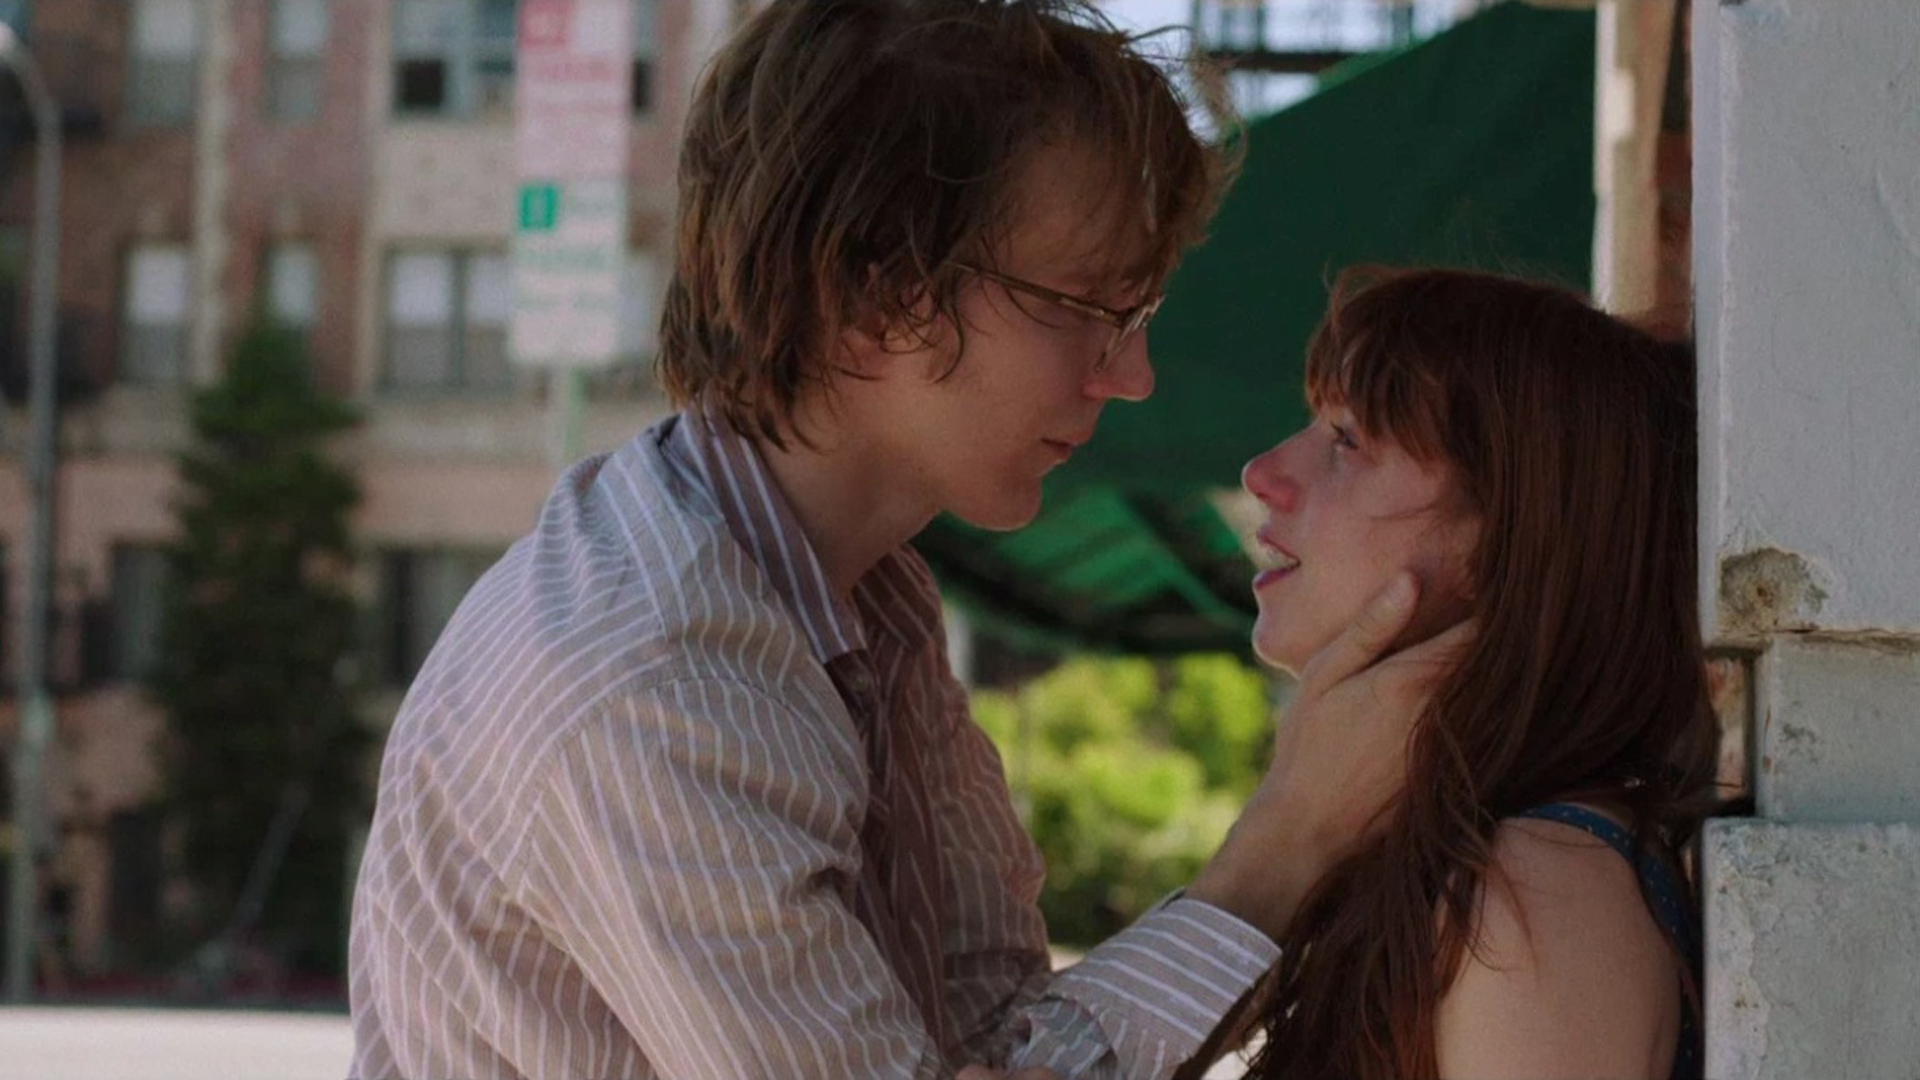 ruby-sparks-image-1